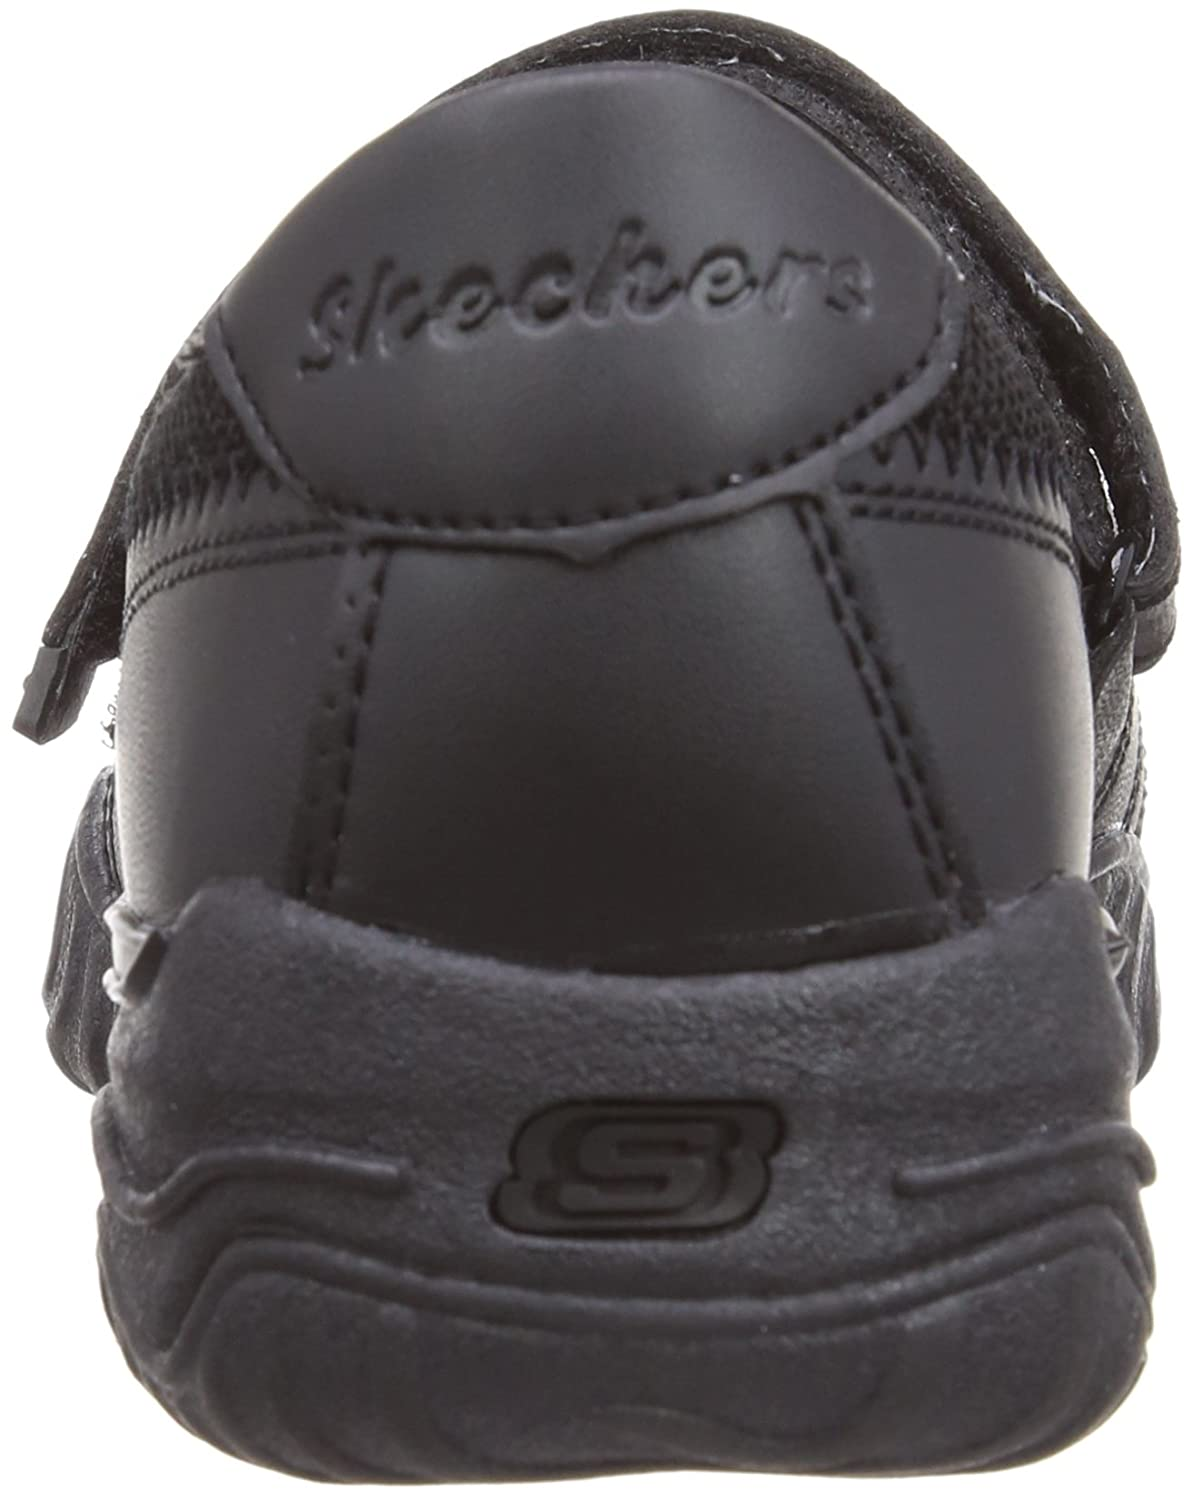 Skechers Velocity Pouty, Mary Janes Fille: